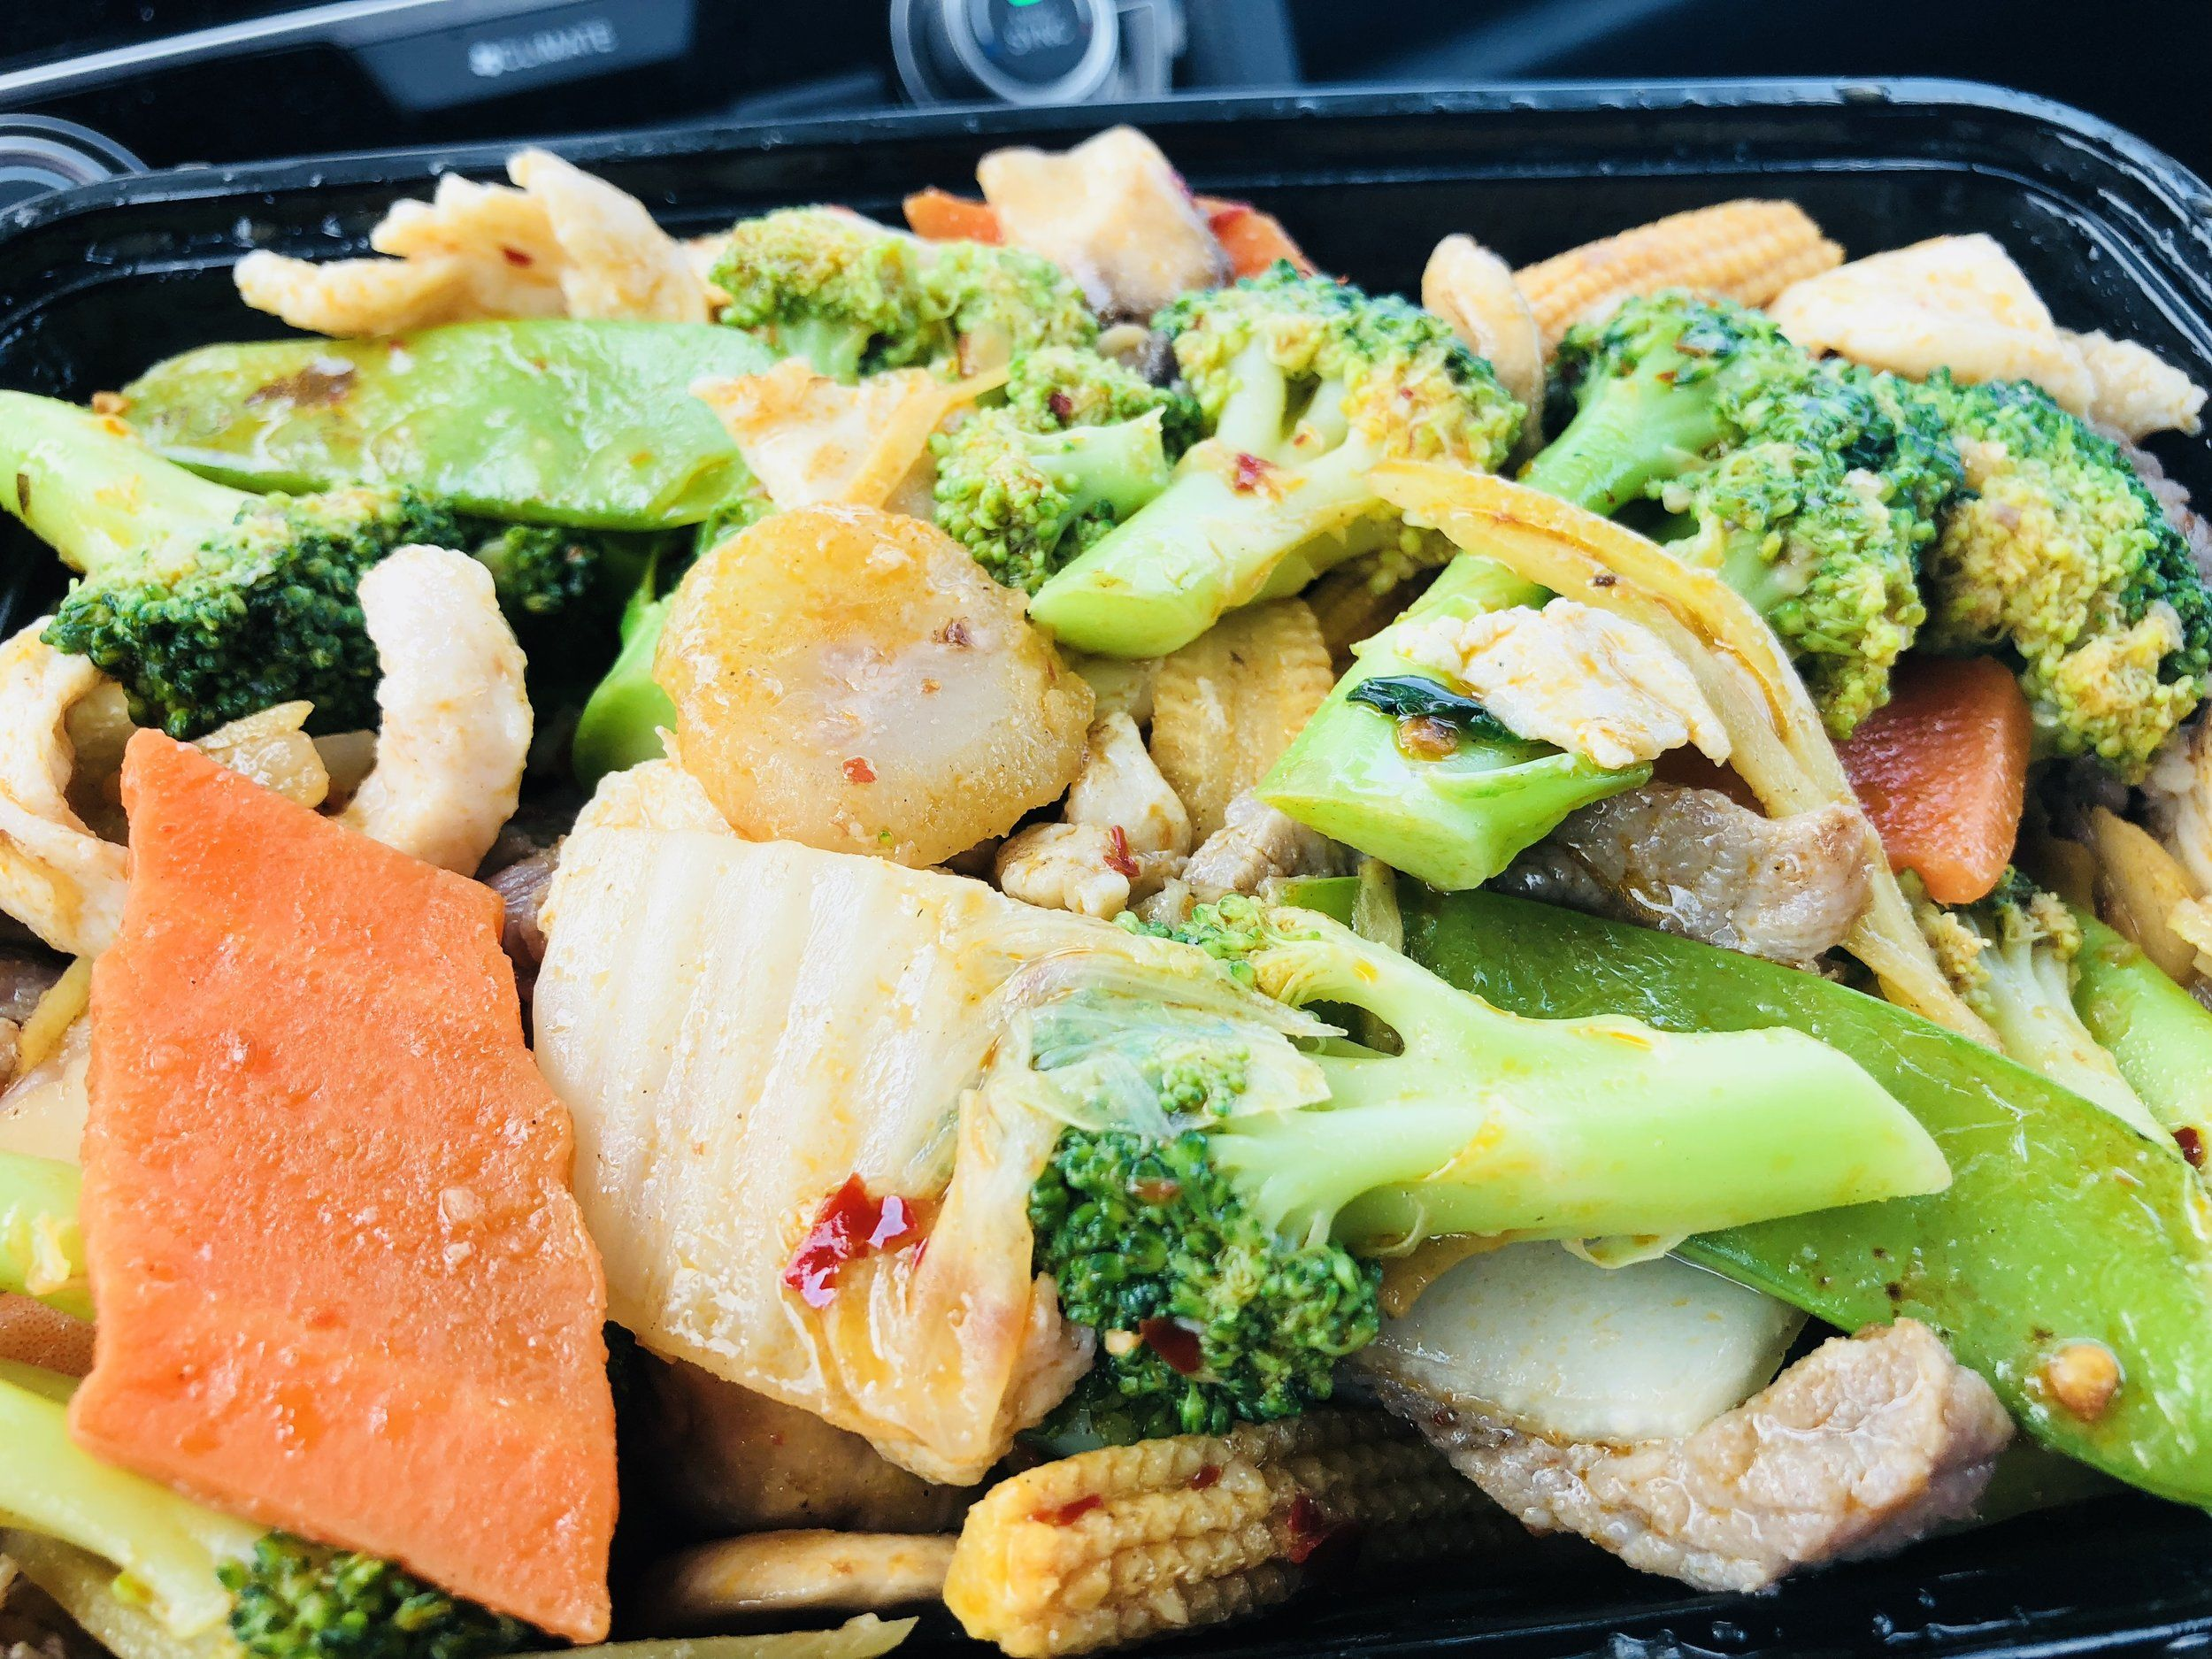 Keto friendly low carb chinese takeout triple delight